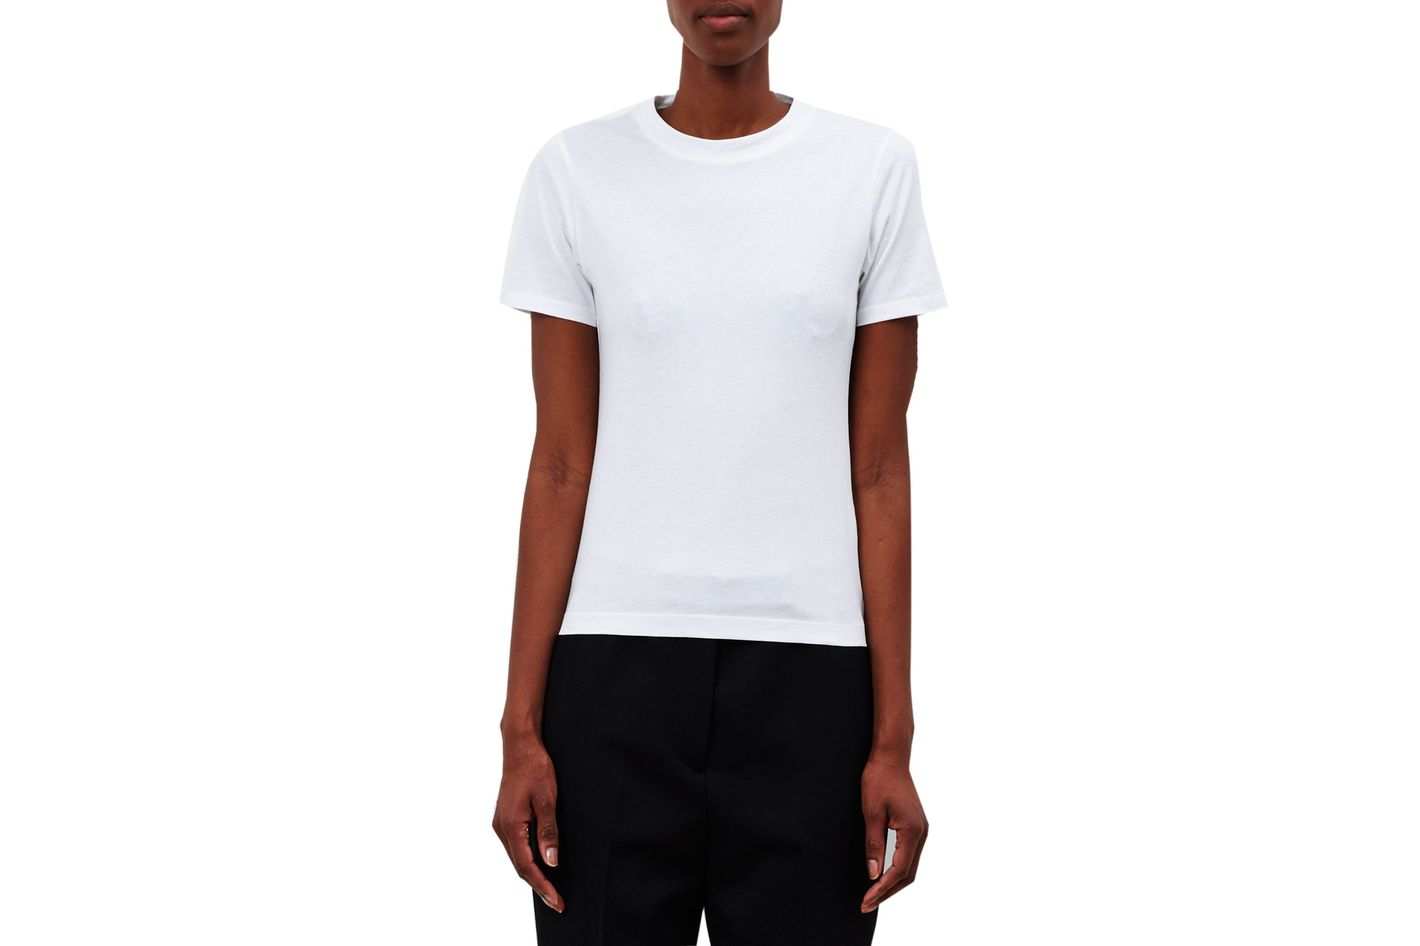 Acne Studios Optic White Dorla Crewneck T-shirt, 2-Pack